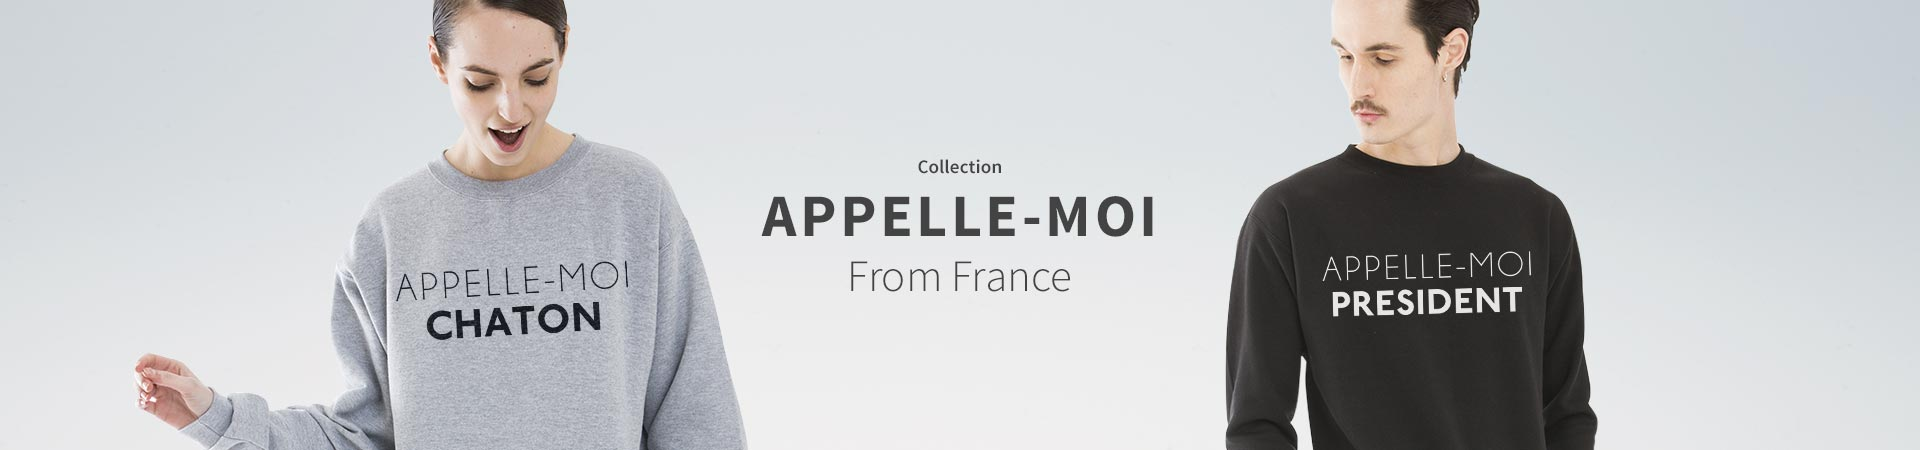 Collection Appelle-Moi